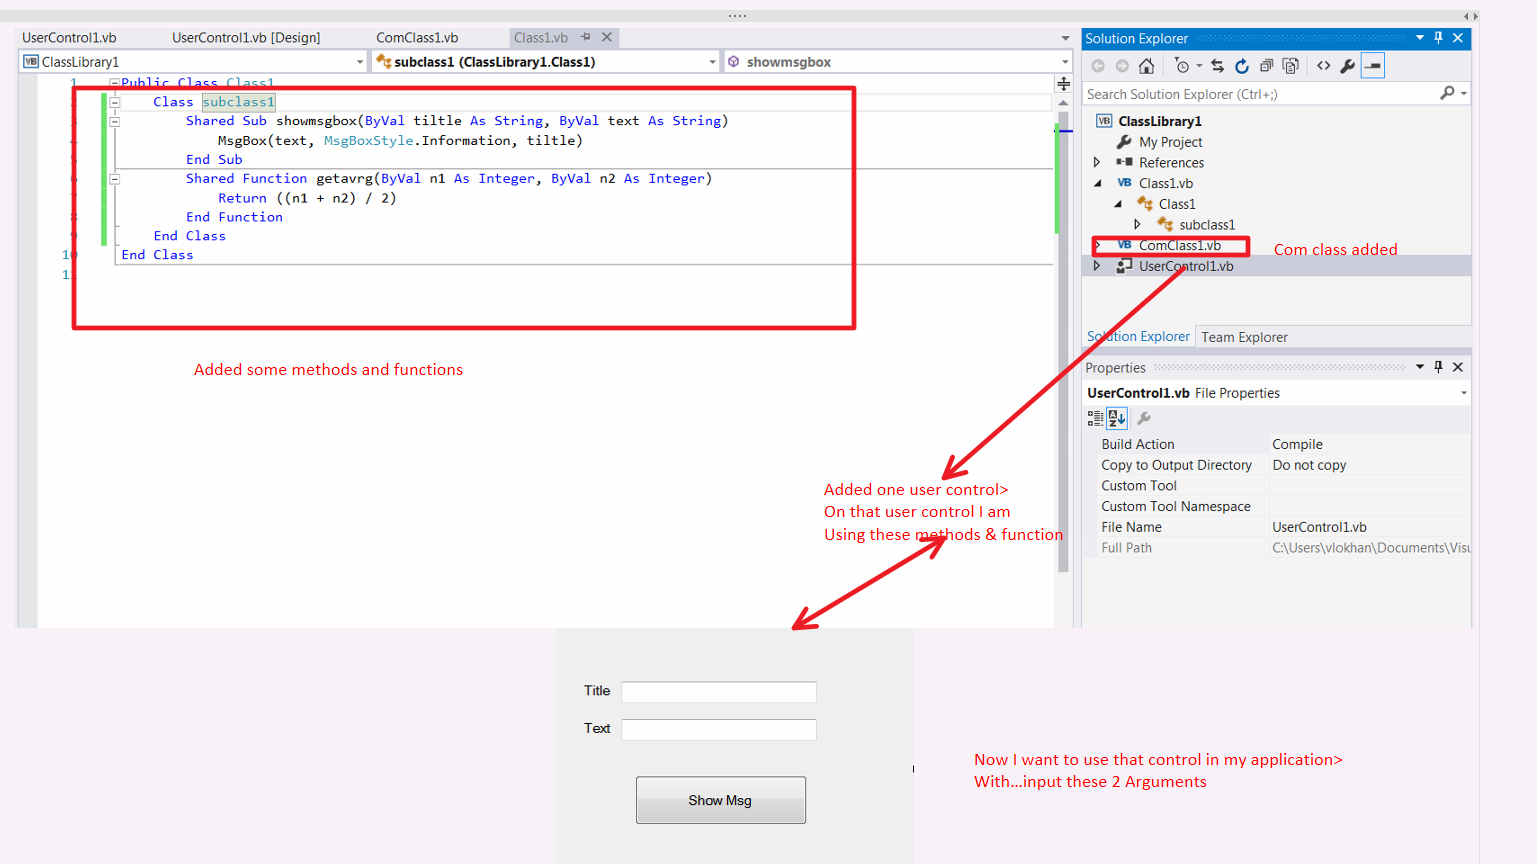 How to create ActiveX Control objects in visual basic 2010 using VB.net